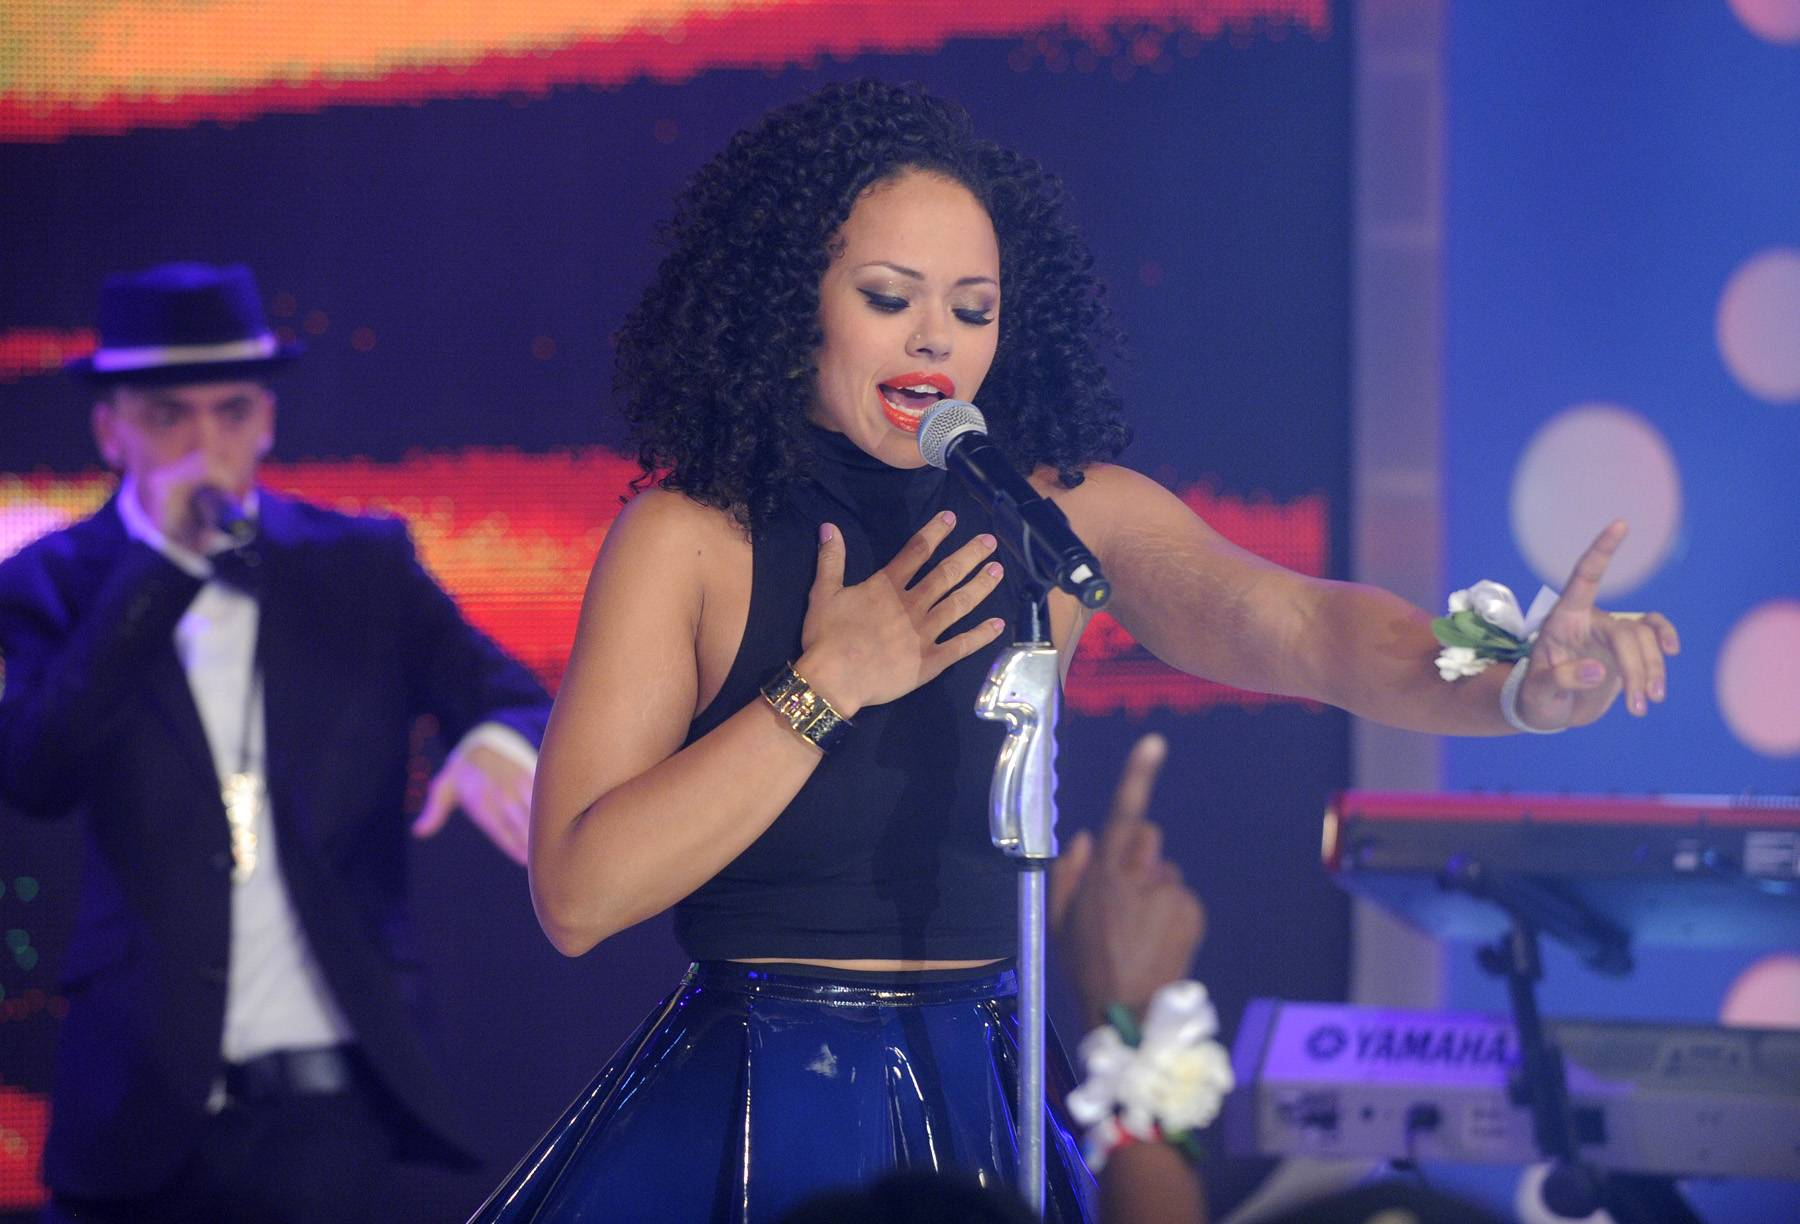 Intimate Moment on the Mic - Elle Varner performs at 106 & Park, May 25, 2012. (Photo: John Ricard / BET)